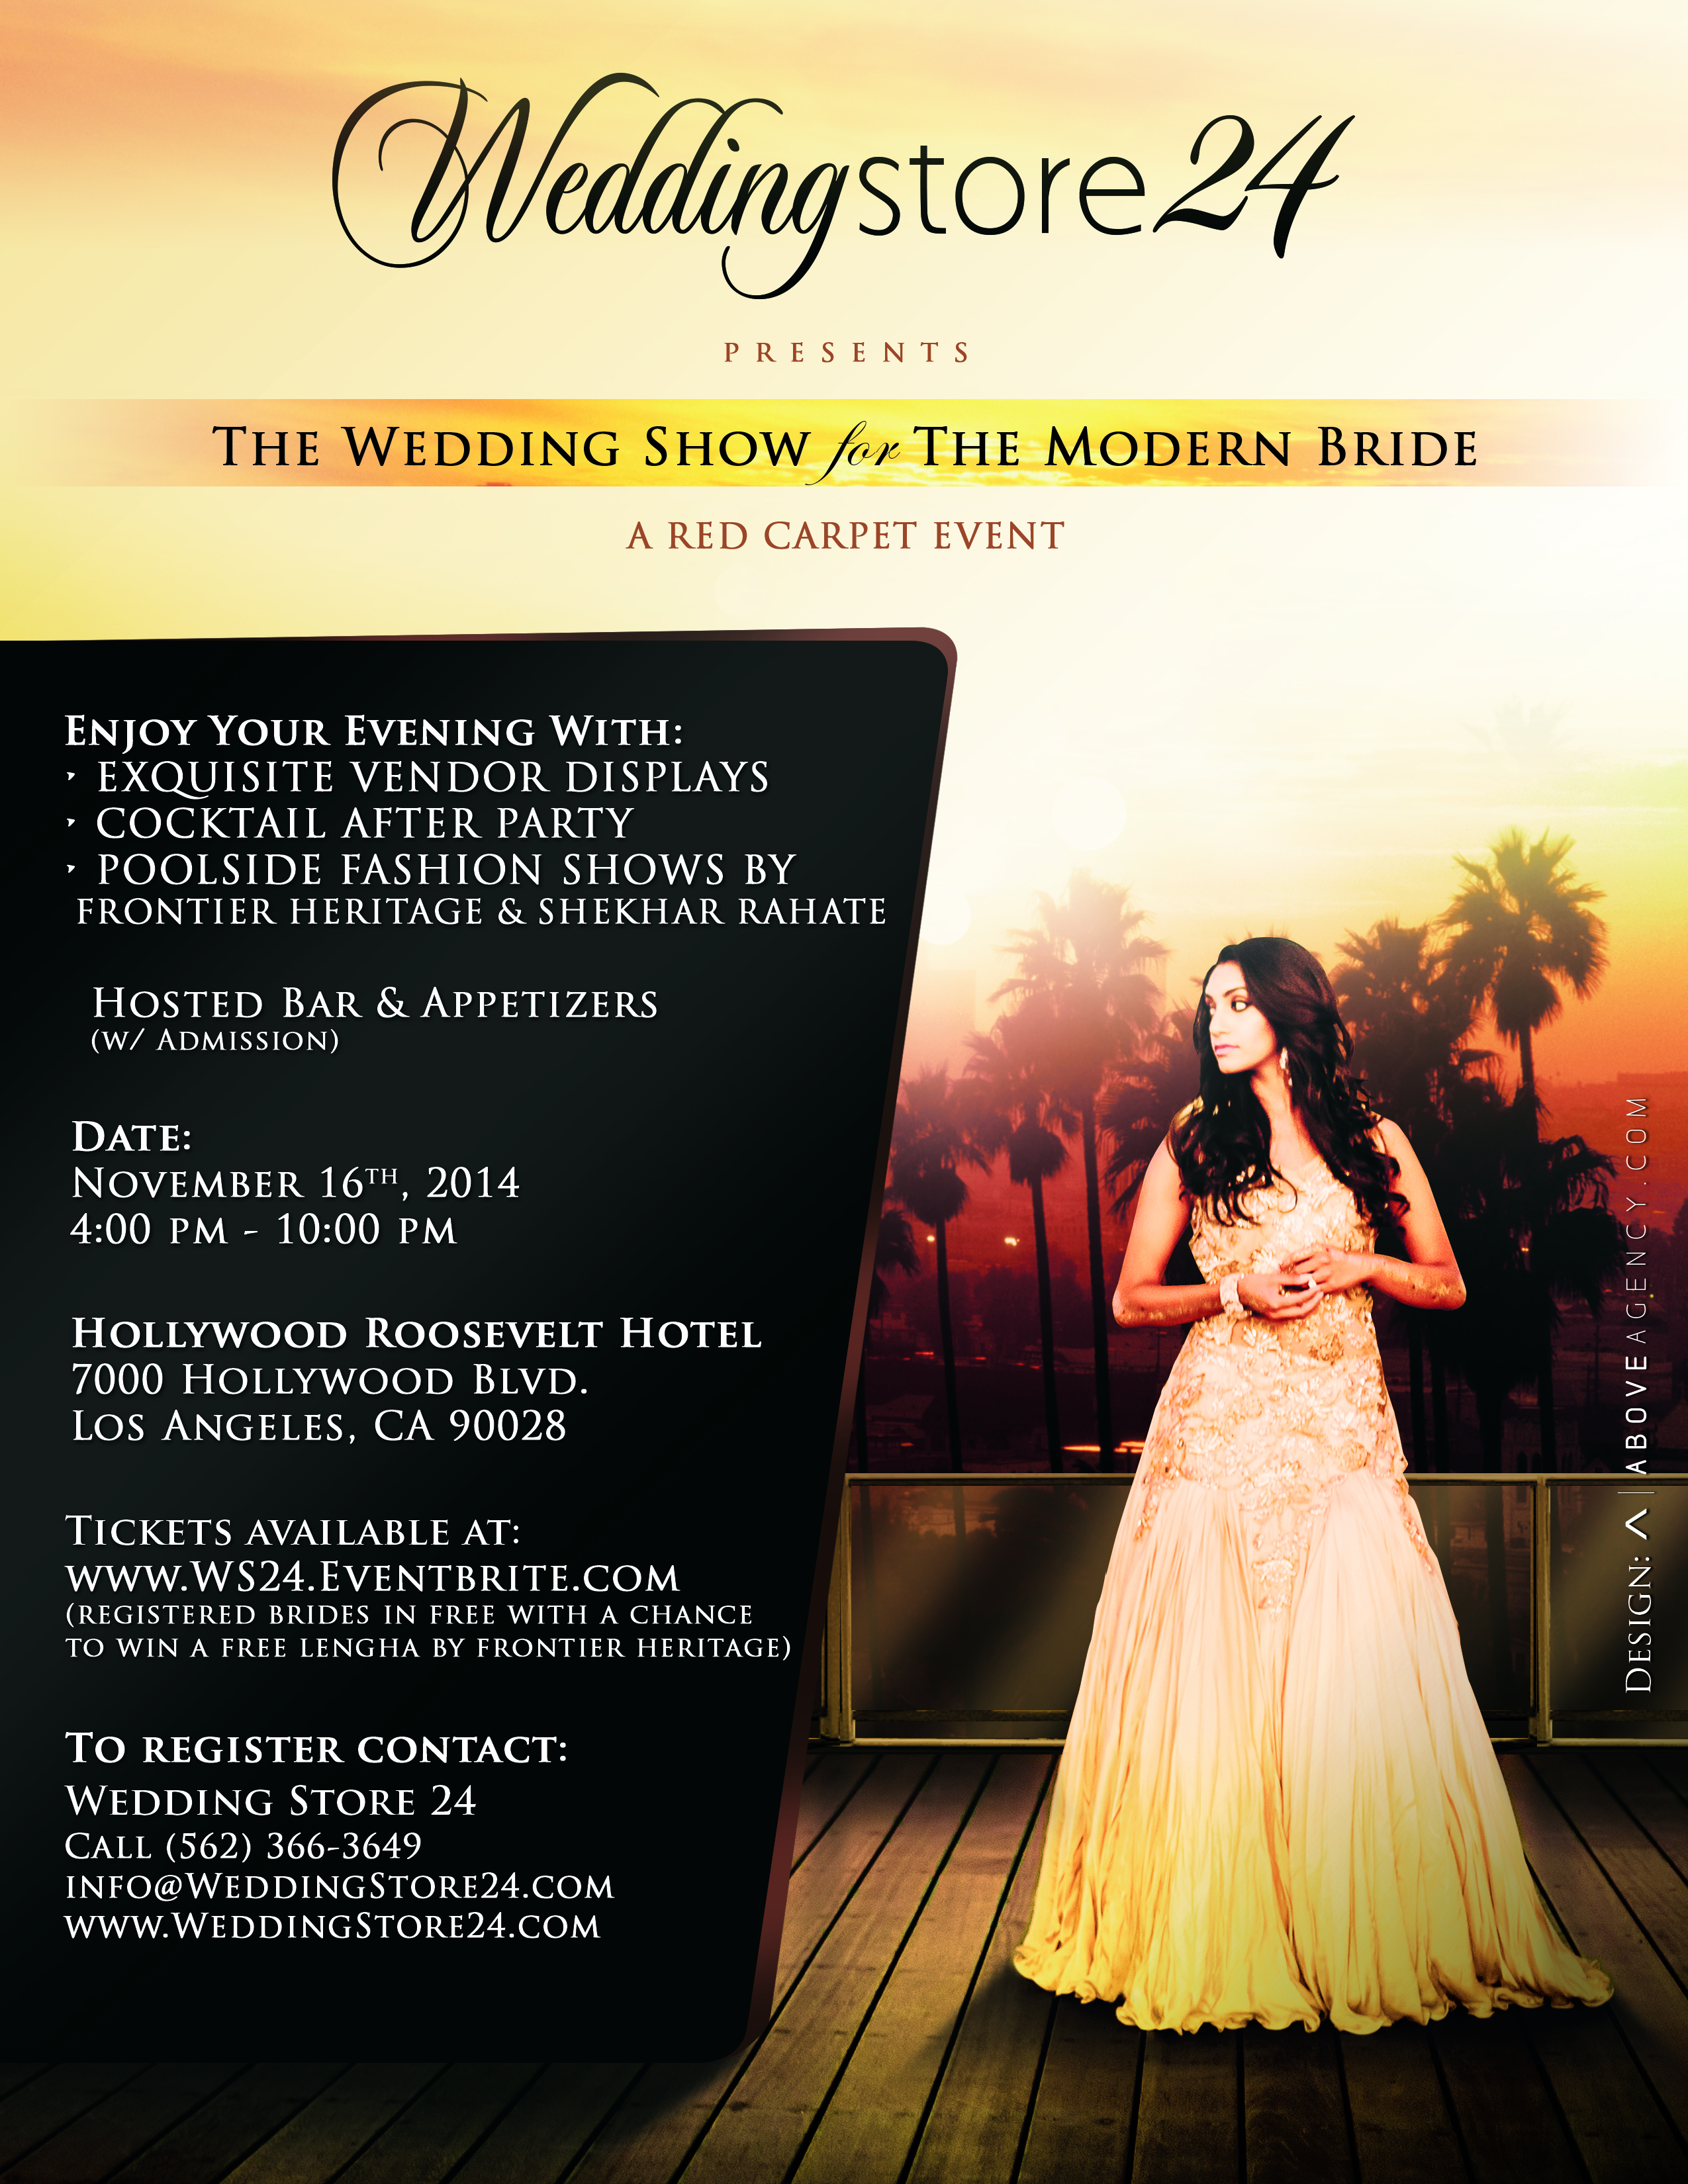 To register, email info@weddingstore24.com or call Wedding Store 24 at (562  )366-3649. You can also purchase tickets HERE!